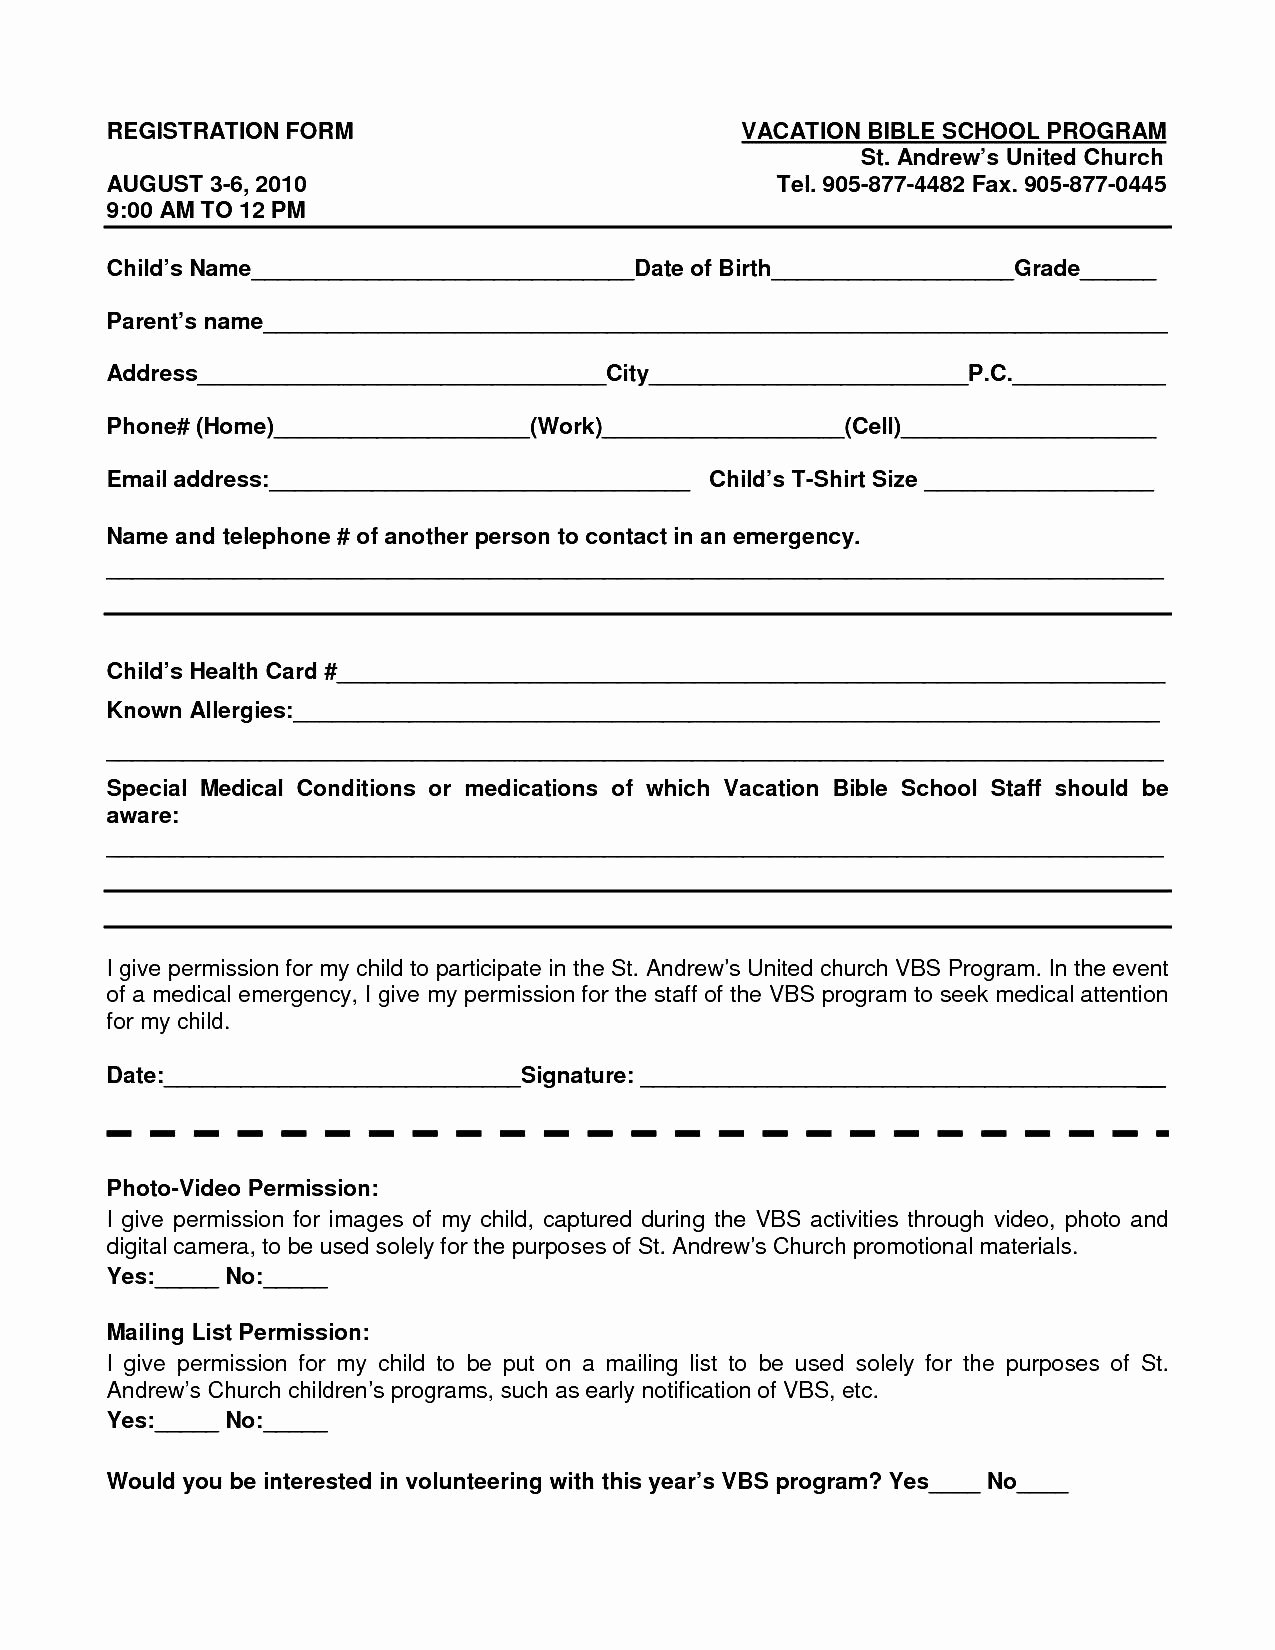 Registration form Template Word Awesome School Register form Template